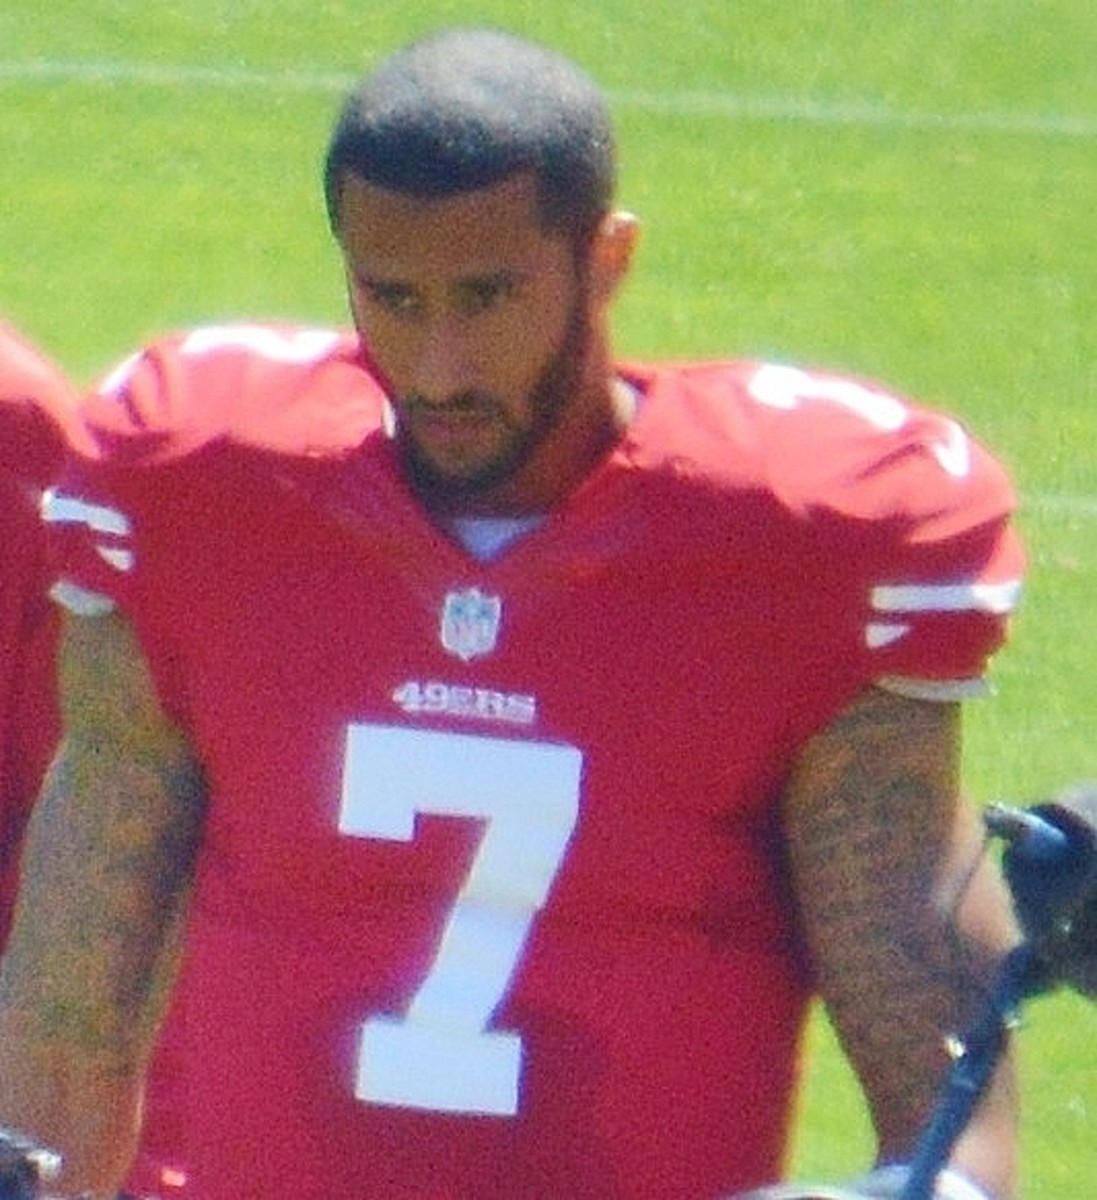 Colin Kaepernick in 2013.